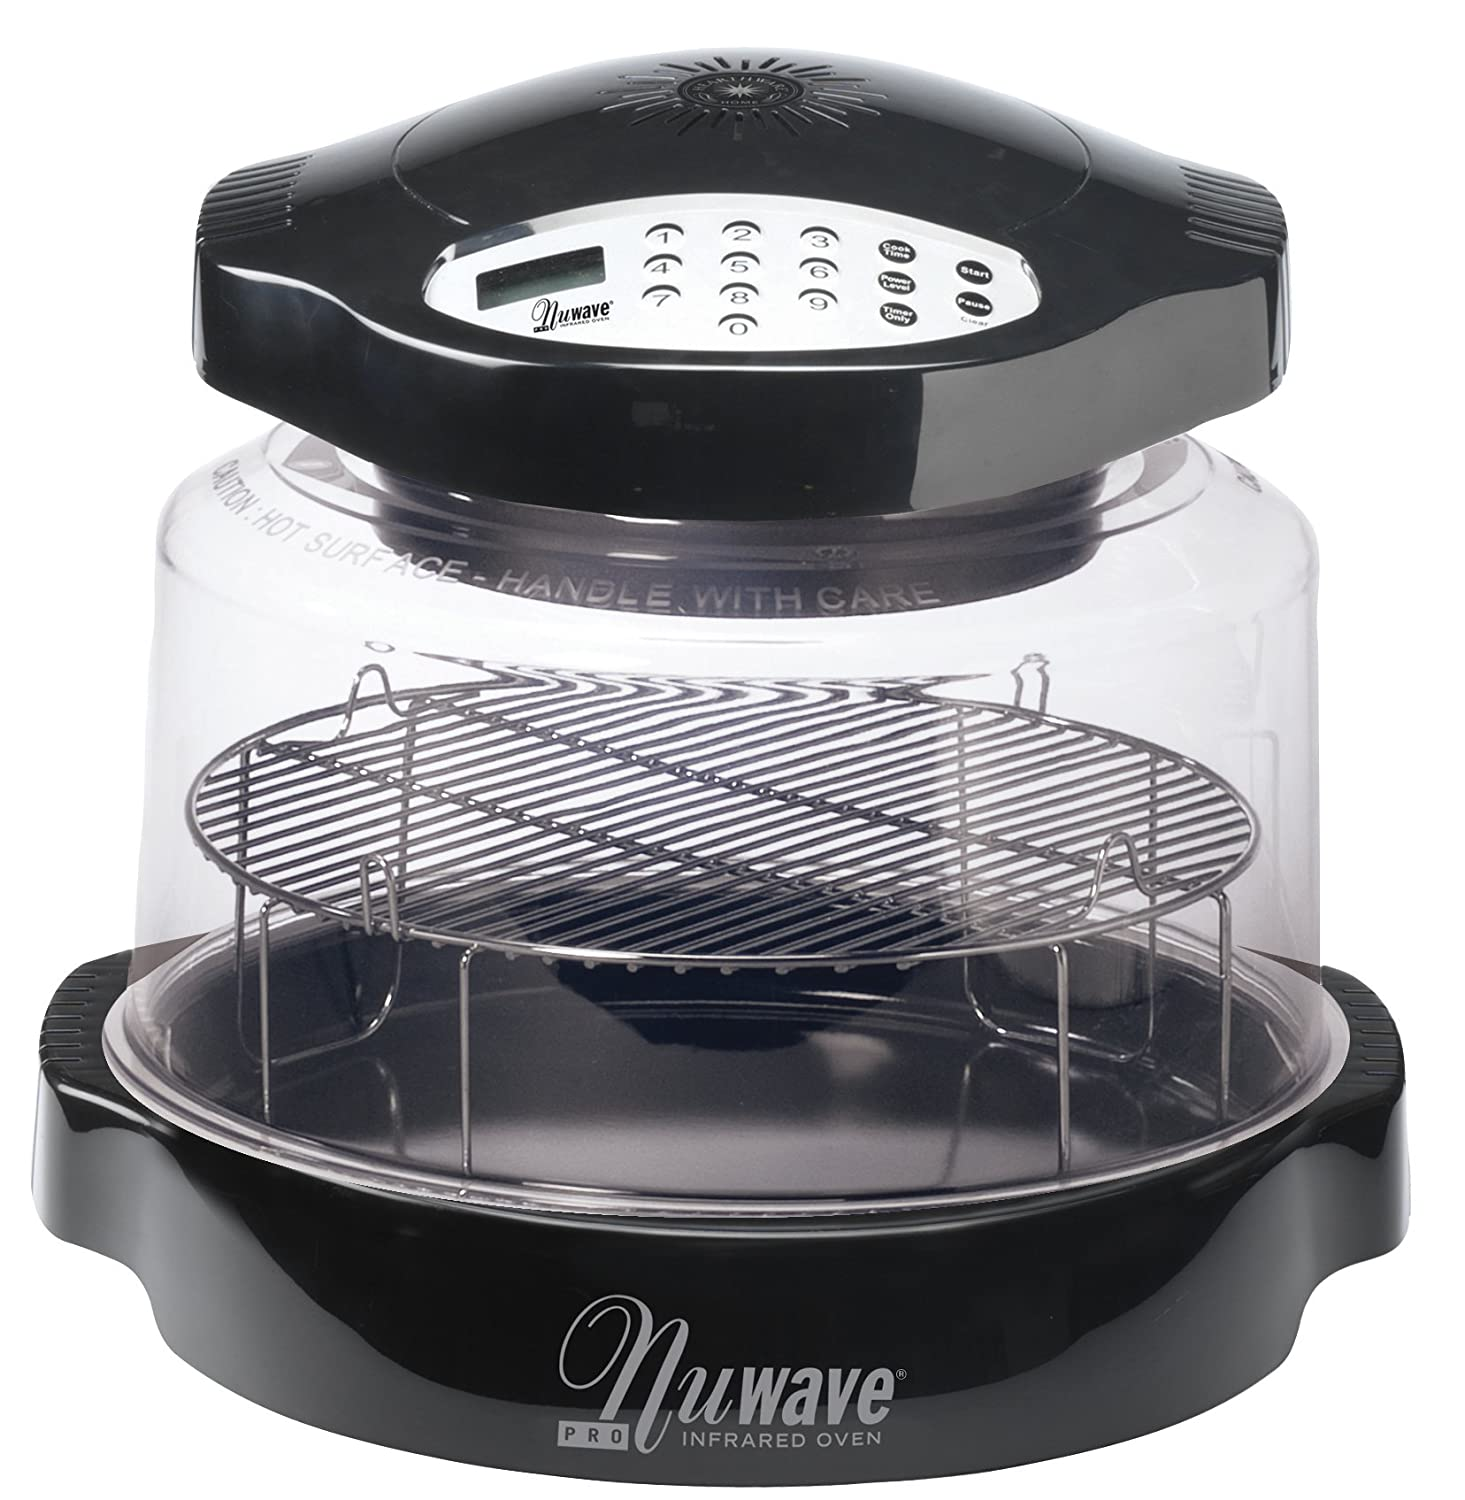 Nuwave Pro Infrared Convection Oven - As Seen On TV by NuWave Hearthware Home Prod 20329